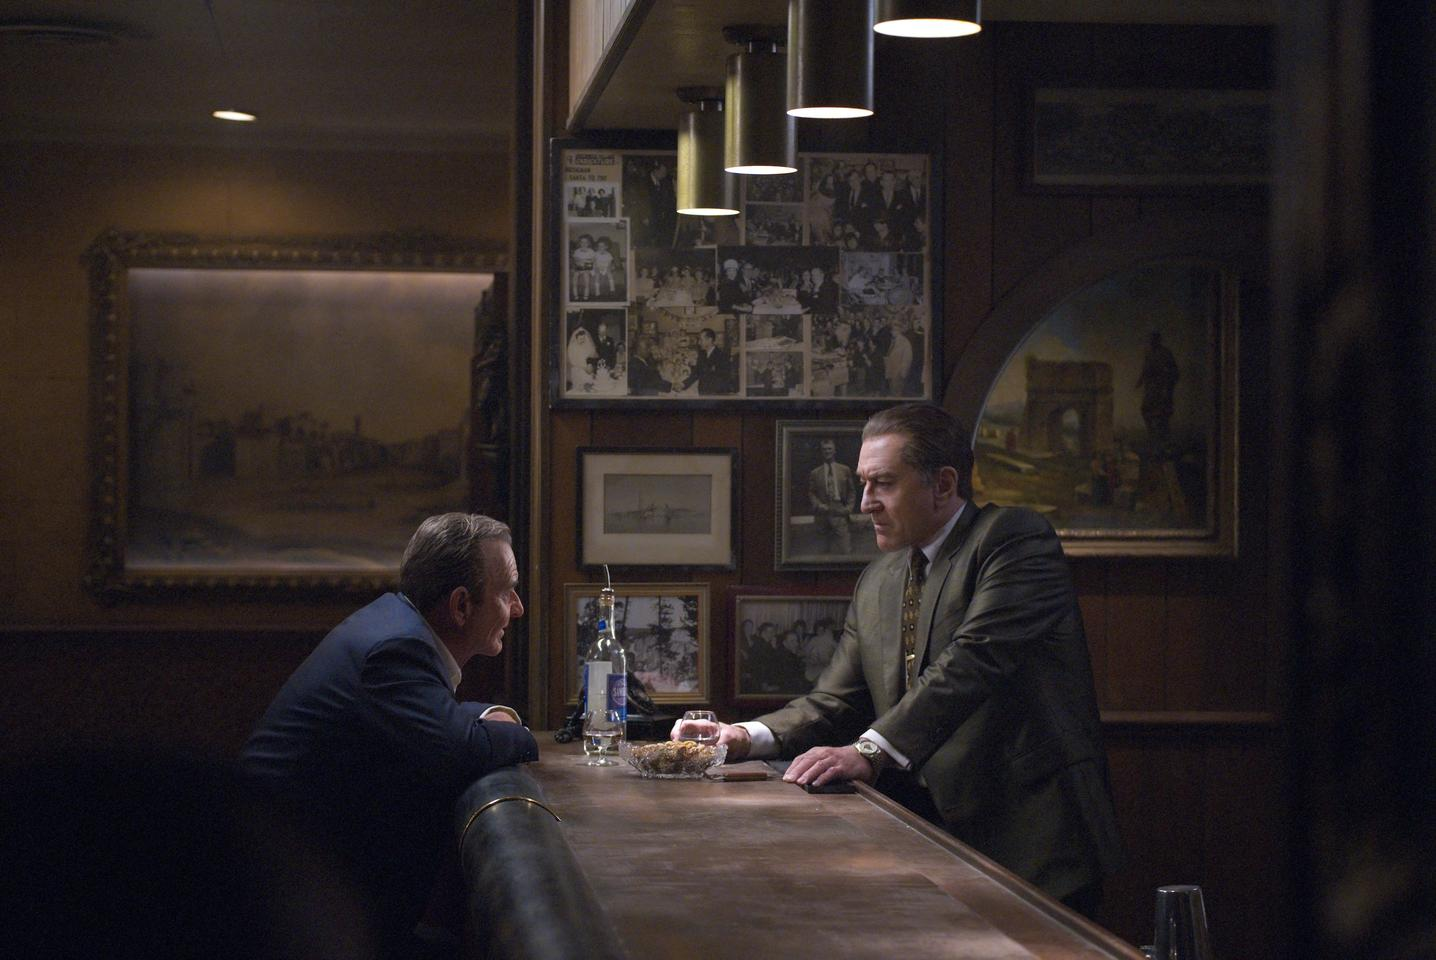 Joe Pesci (Russell Bufalino) and Robert De Niro (Frank Sheeran) in The Irishman